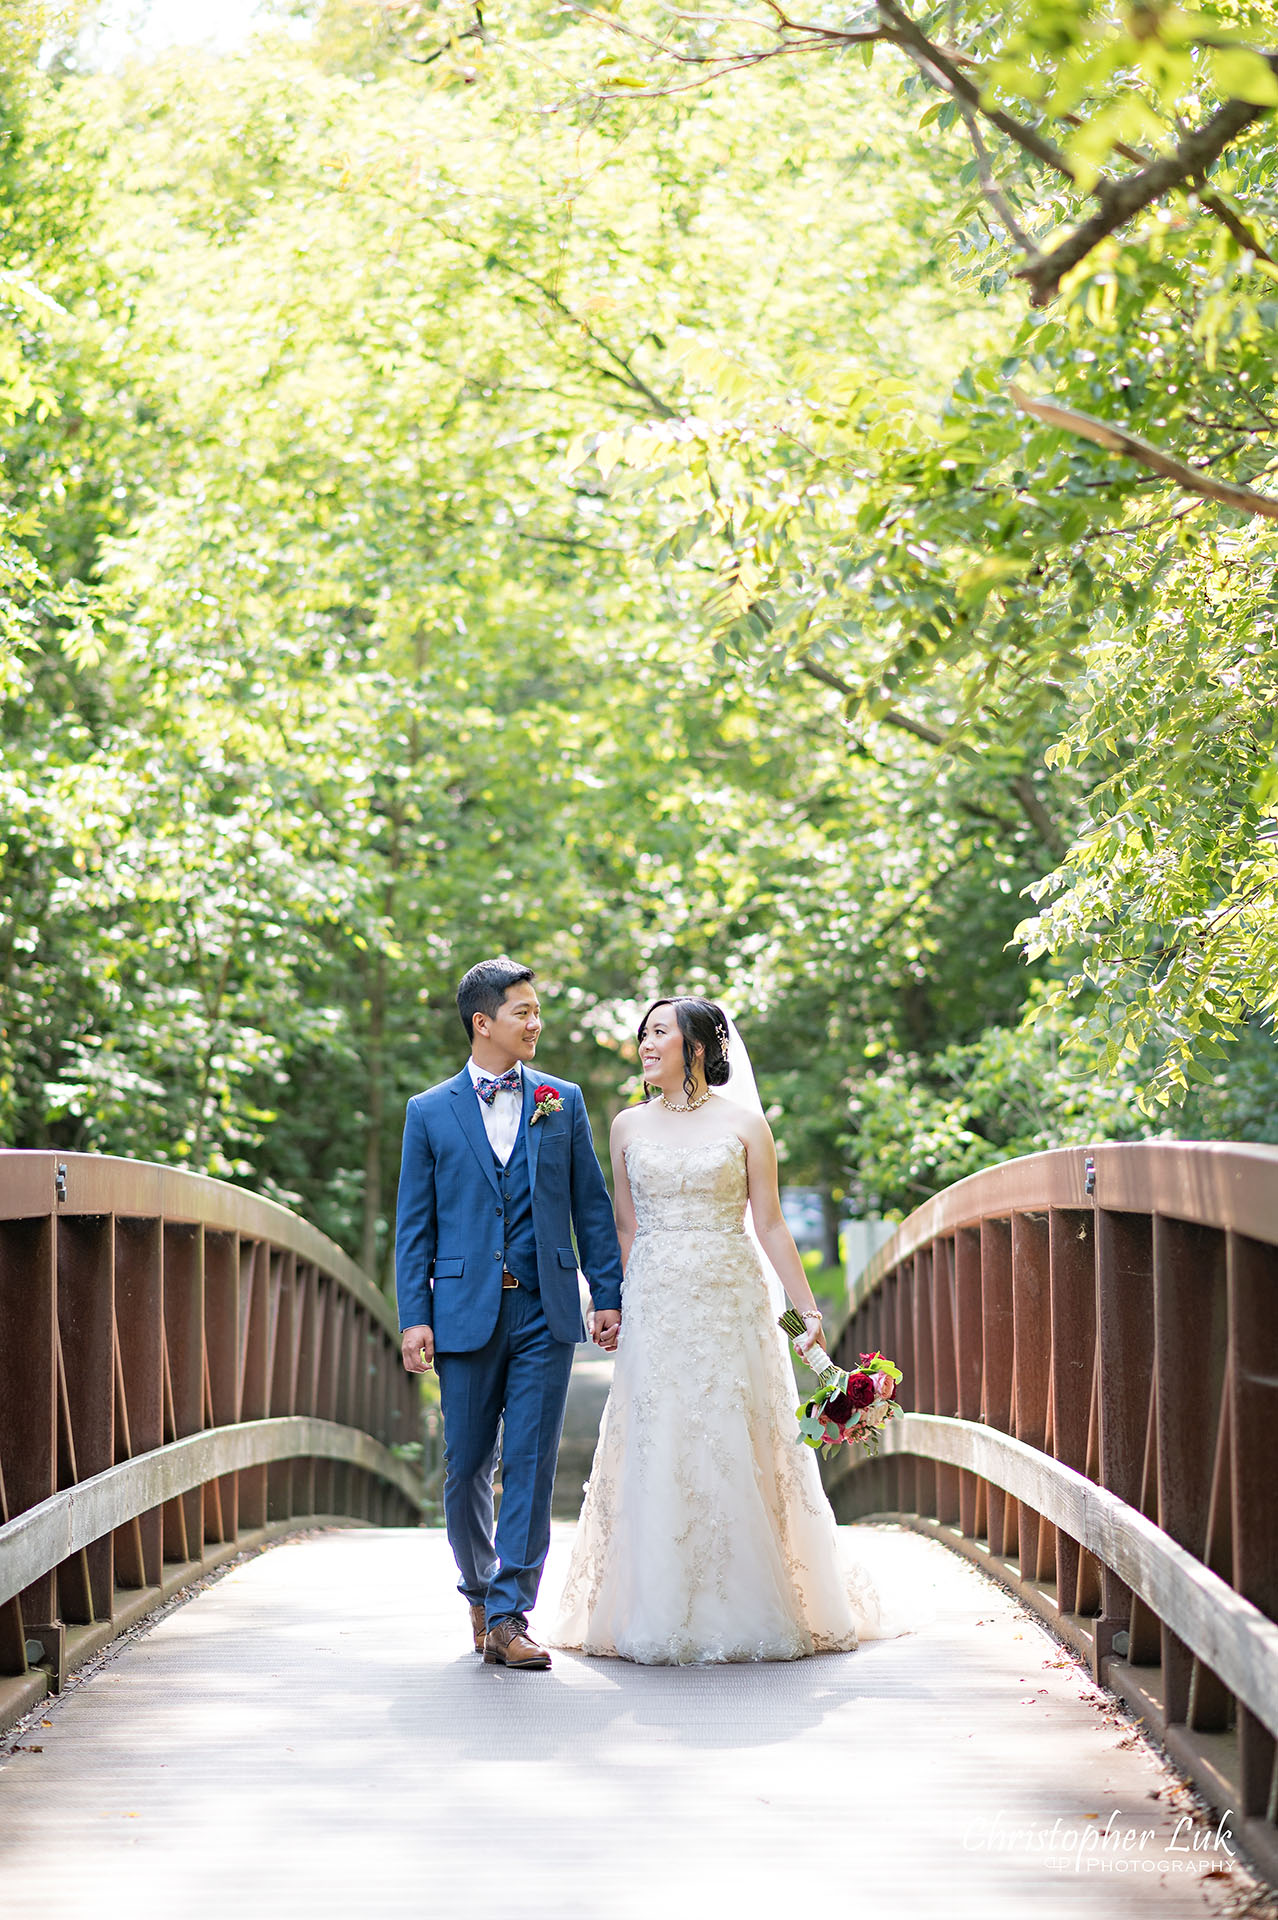 Christopher Luk Toronto Wedding Photographer Bridle Trail Baptist Church Unionville Main Street Crystal Fountain Event Venue Bride Groom Natural Photojournalistic Candid Creative Portrait Session Pictures Forest Trail Walkway Bridge Park Holding Hands Walking Together